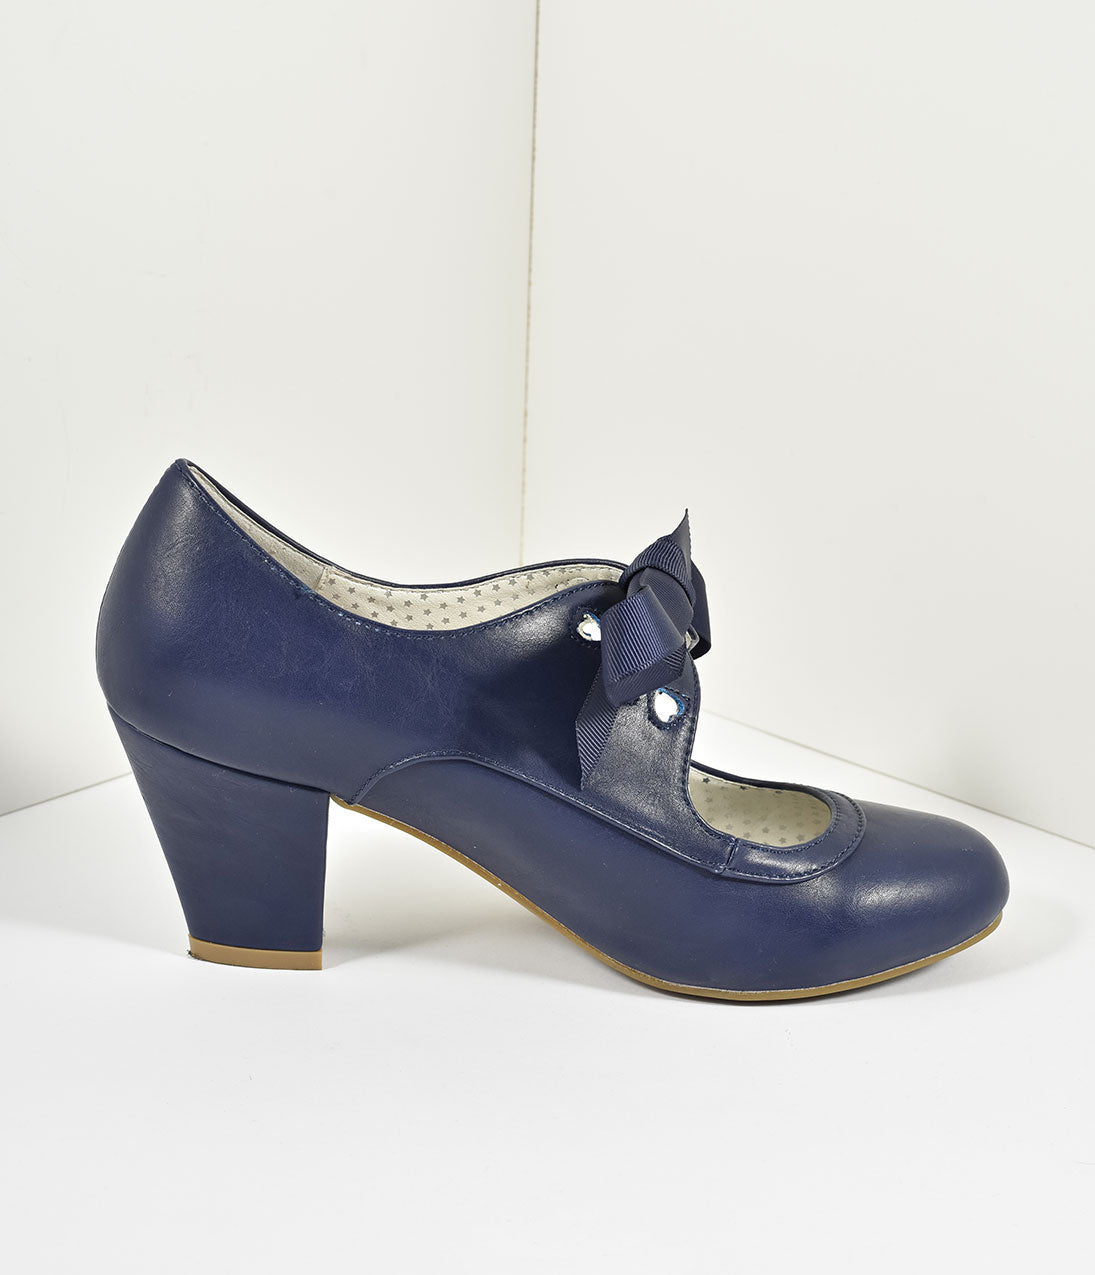 c069b1afd463 Vintage Style Navy Blue Leatherette Mary Jane Bow Wiggle Heels